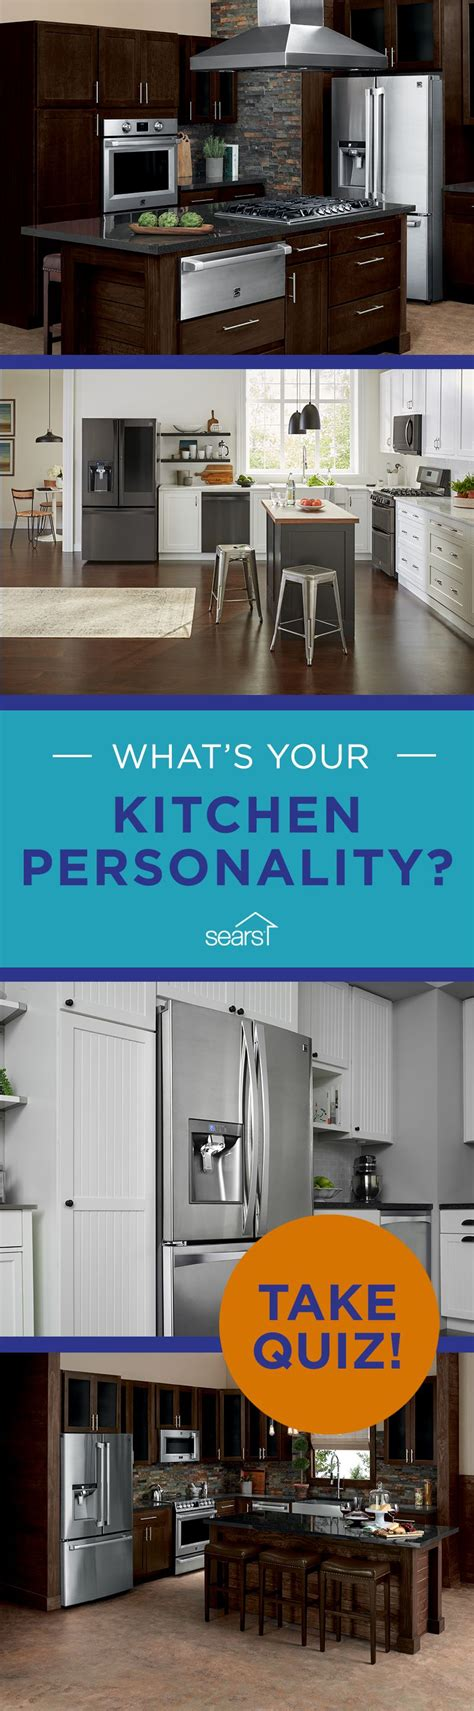 What s your kitchen personality? Are you more of a chef